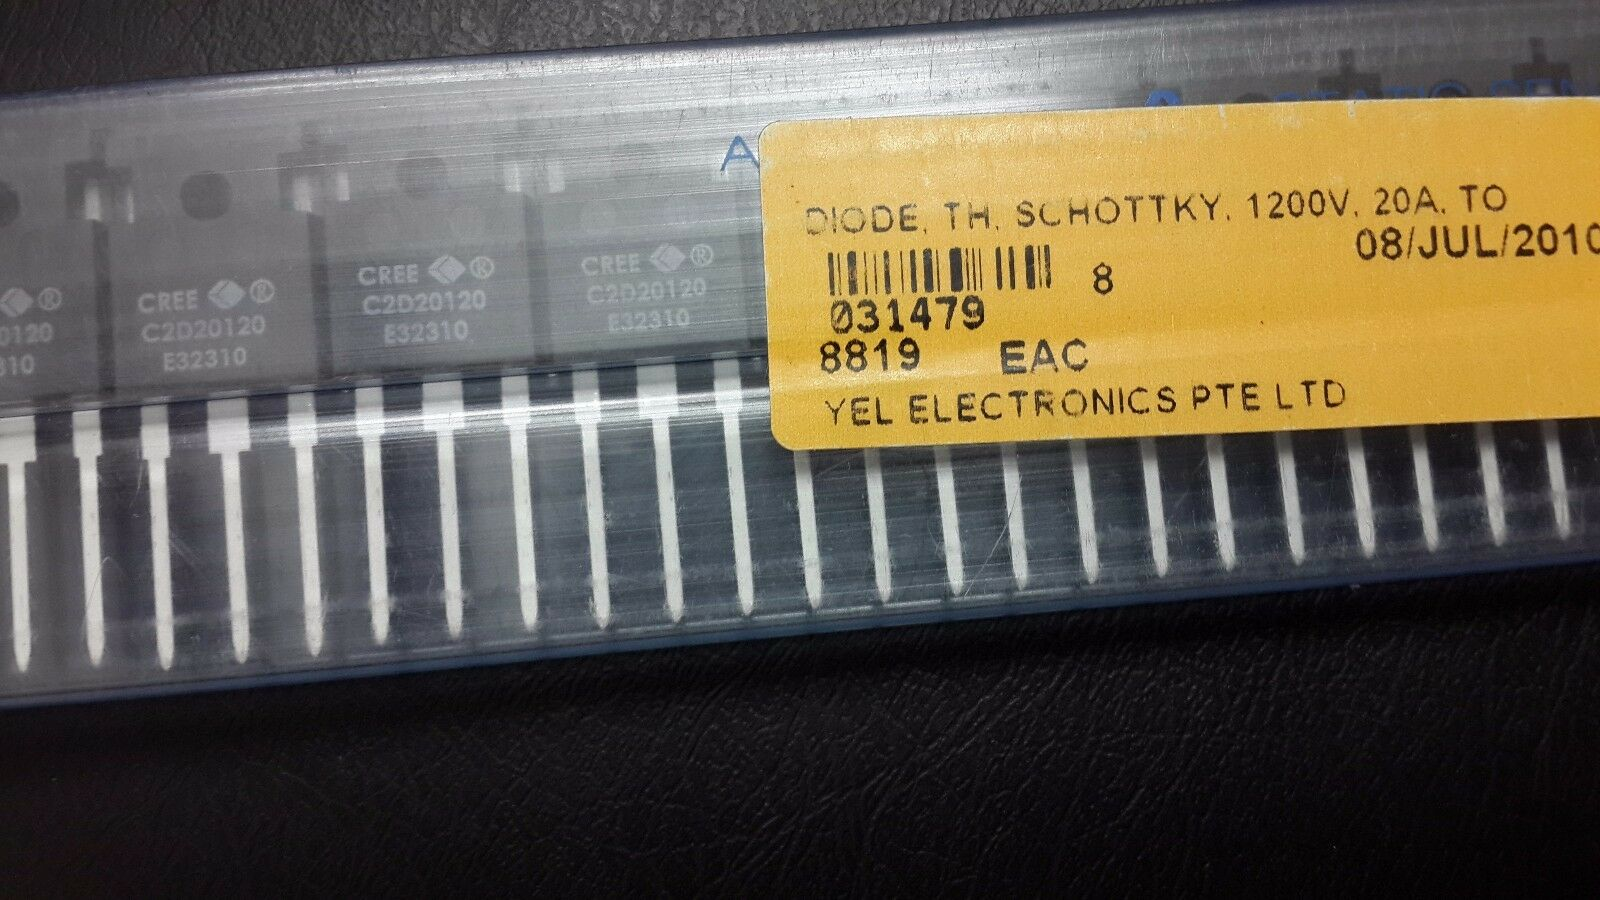 100pcs lot Cree C2D20120 SIC Schottky Diode Zero Recovery TO247 1200V 2X10A-New